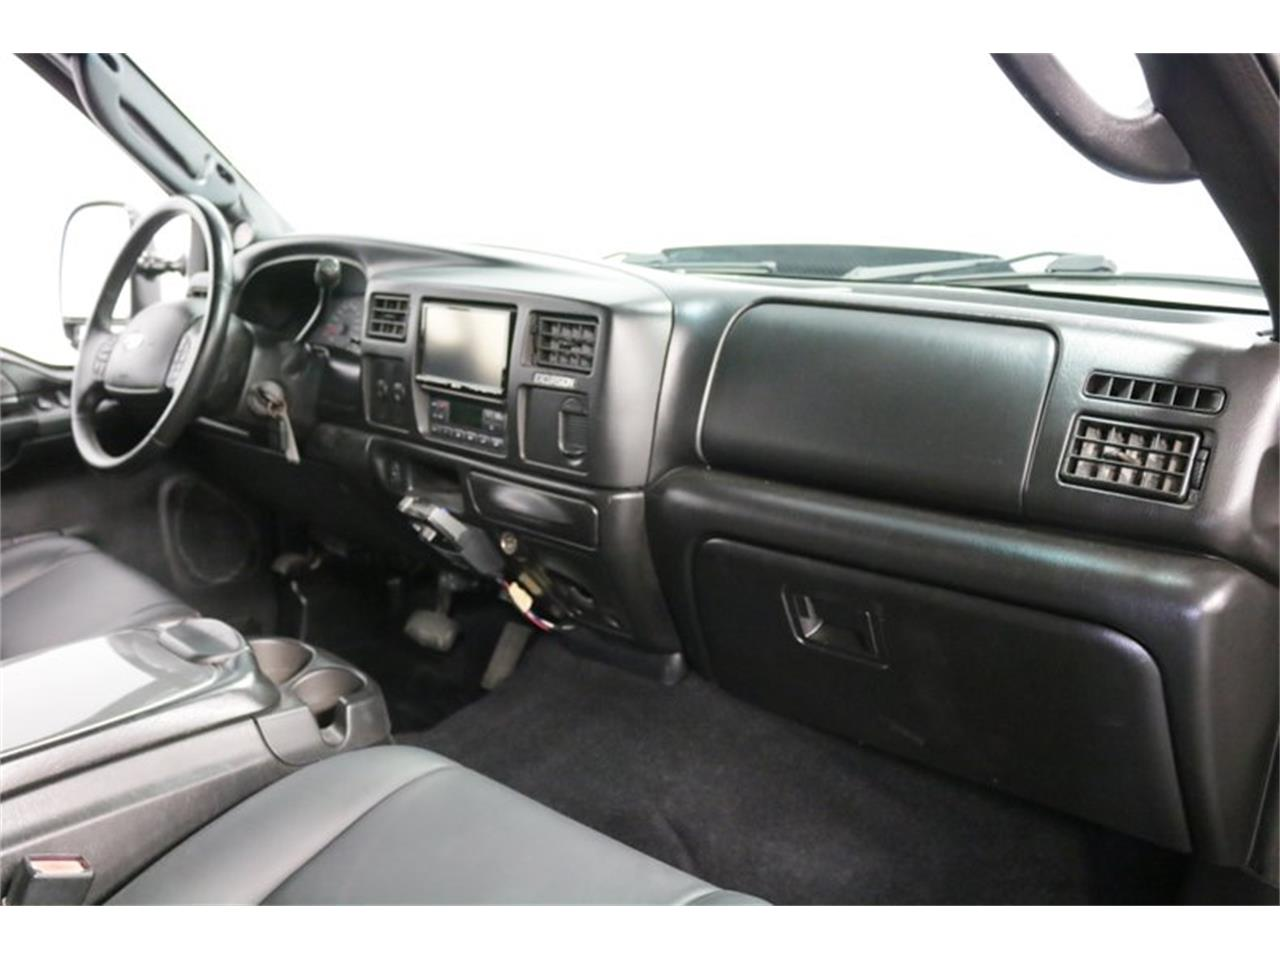 2004 Ford Excursion (CC-1232760) for sale in Ft Worth, Texas